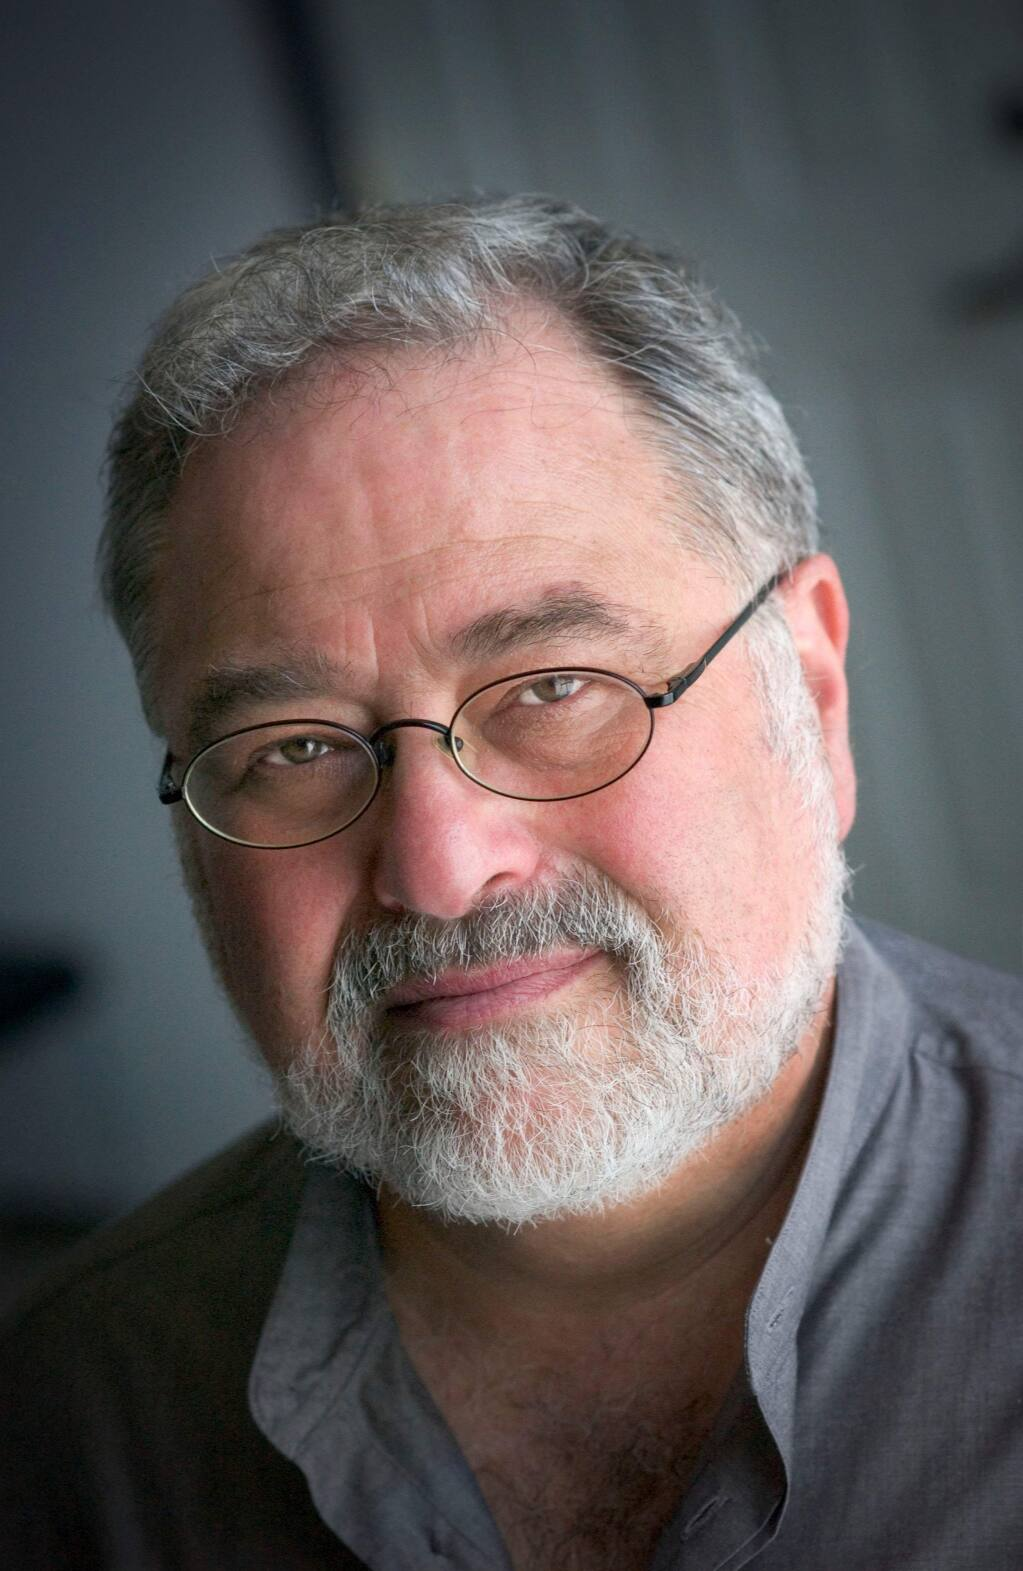 George Lakoff, author of 'Don't Think of an Elephant' and 'The Political Mind,' will lecture at Vintage House on Sunday, Jan. 19. (Submitted photo)